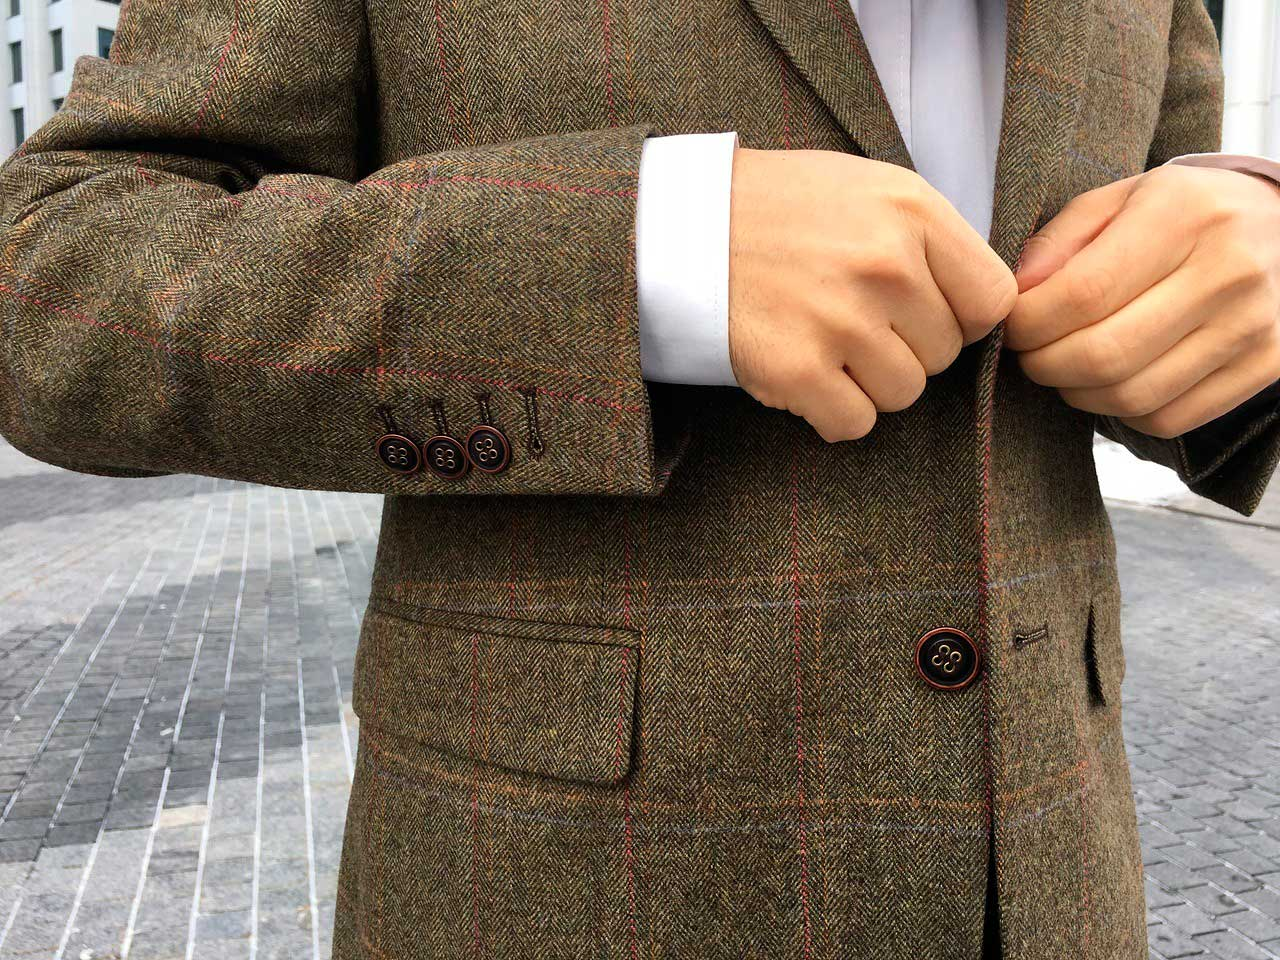 Ткань: Harris Tweed, шерсть 100%